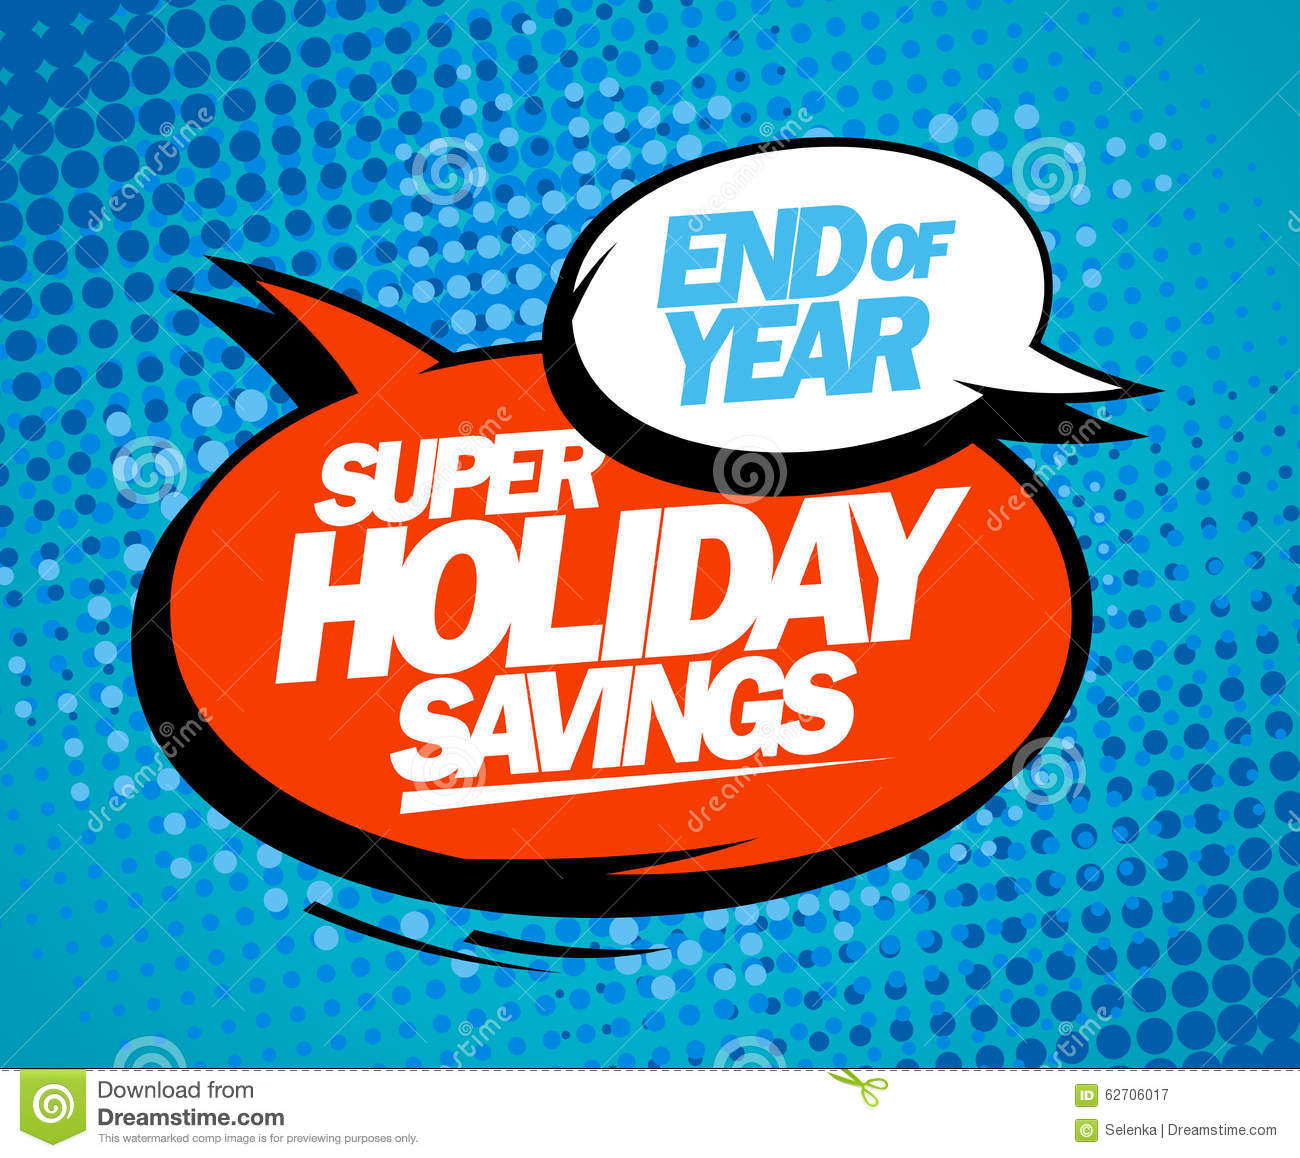 Super Holiday Savings End Of Year Sale Design